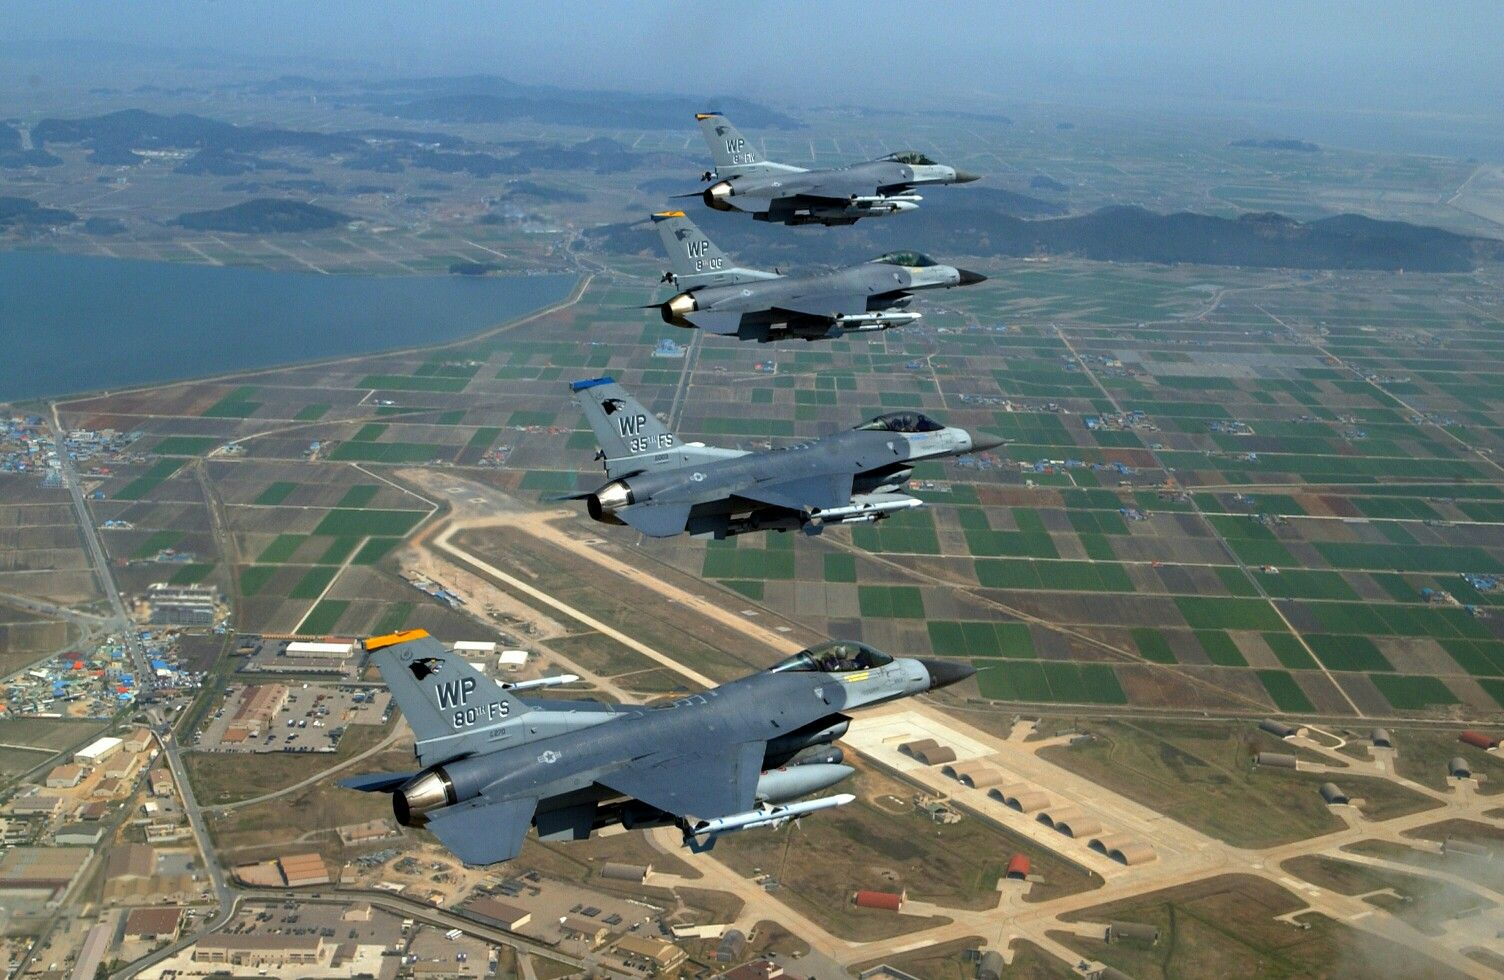 Pin by Mike Stern on F-16 | Air force bases, Air force